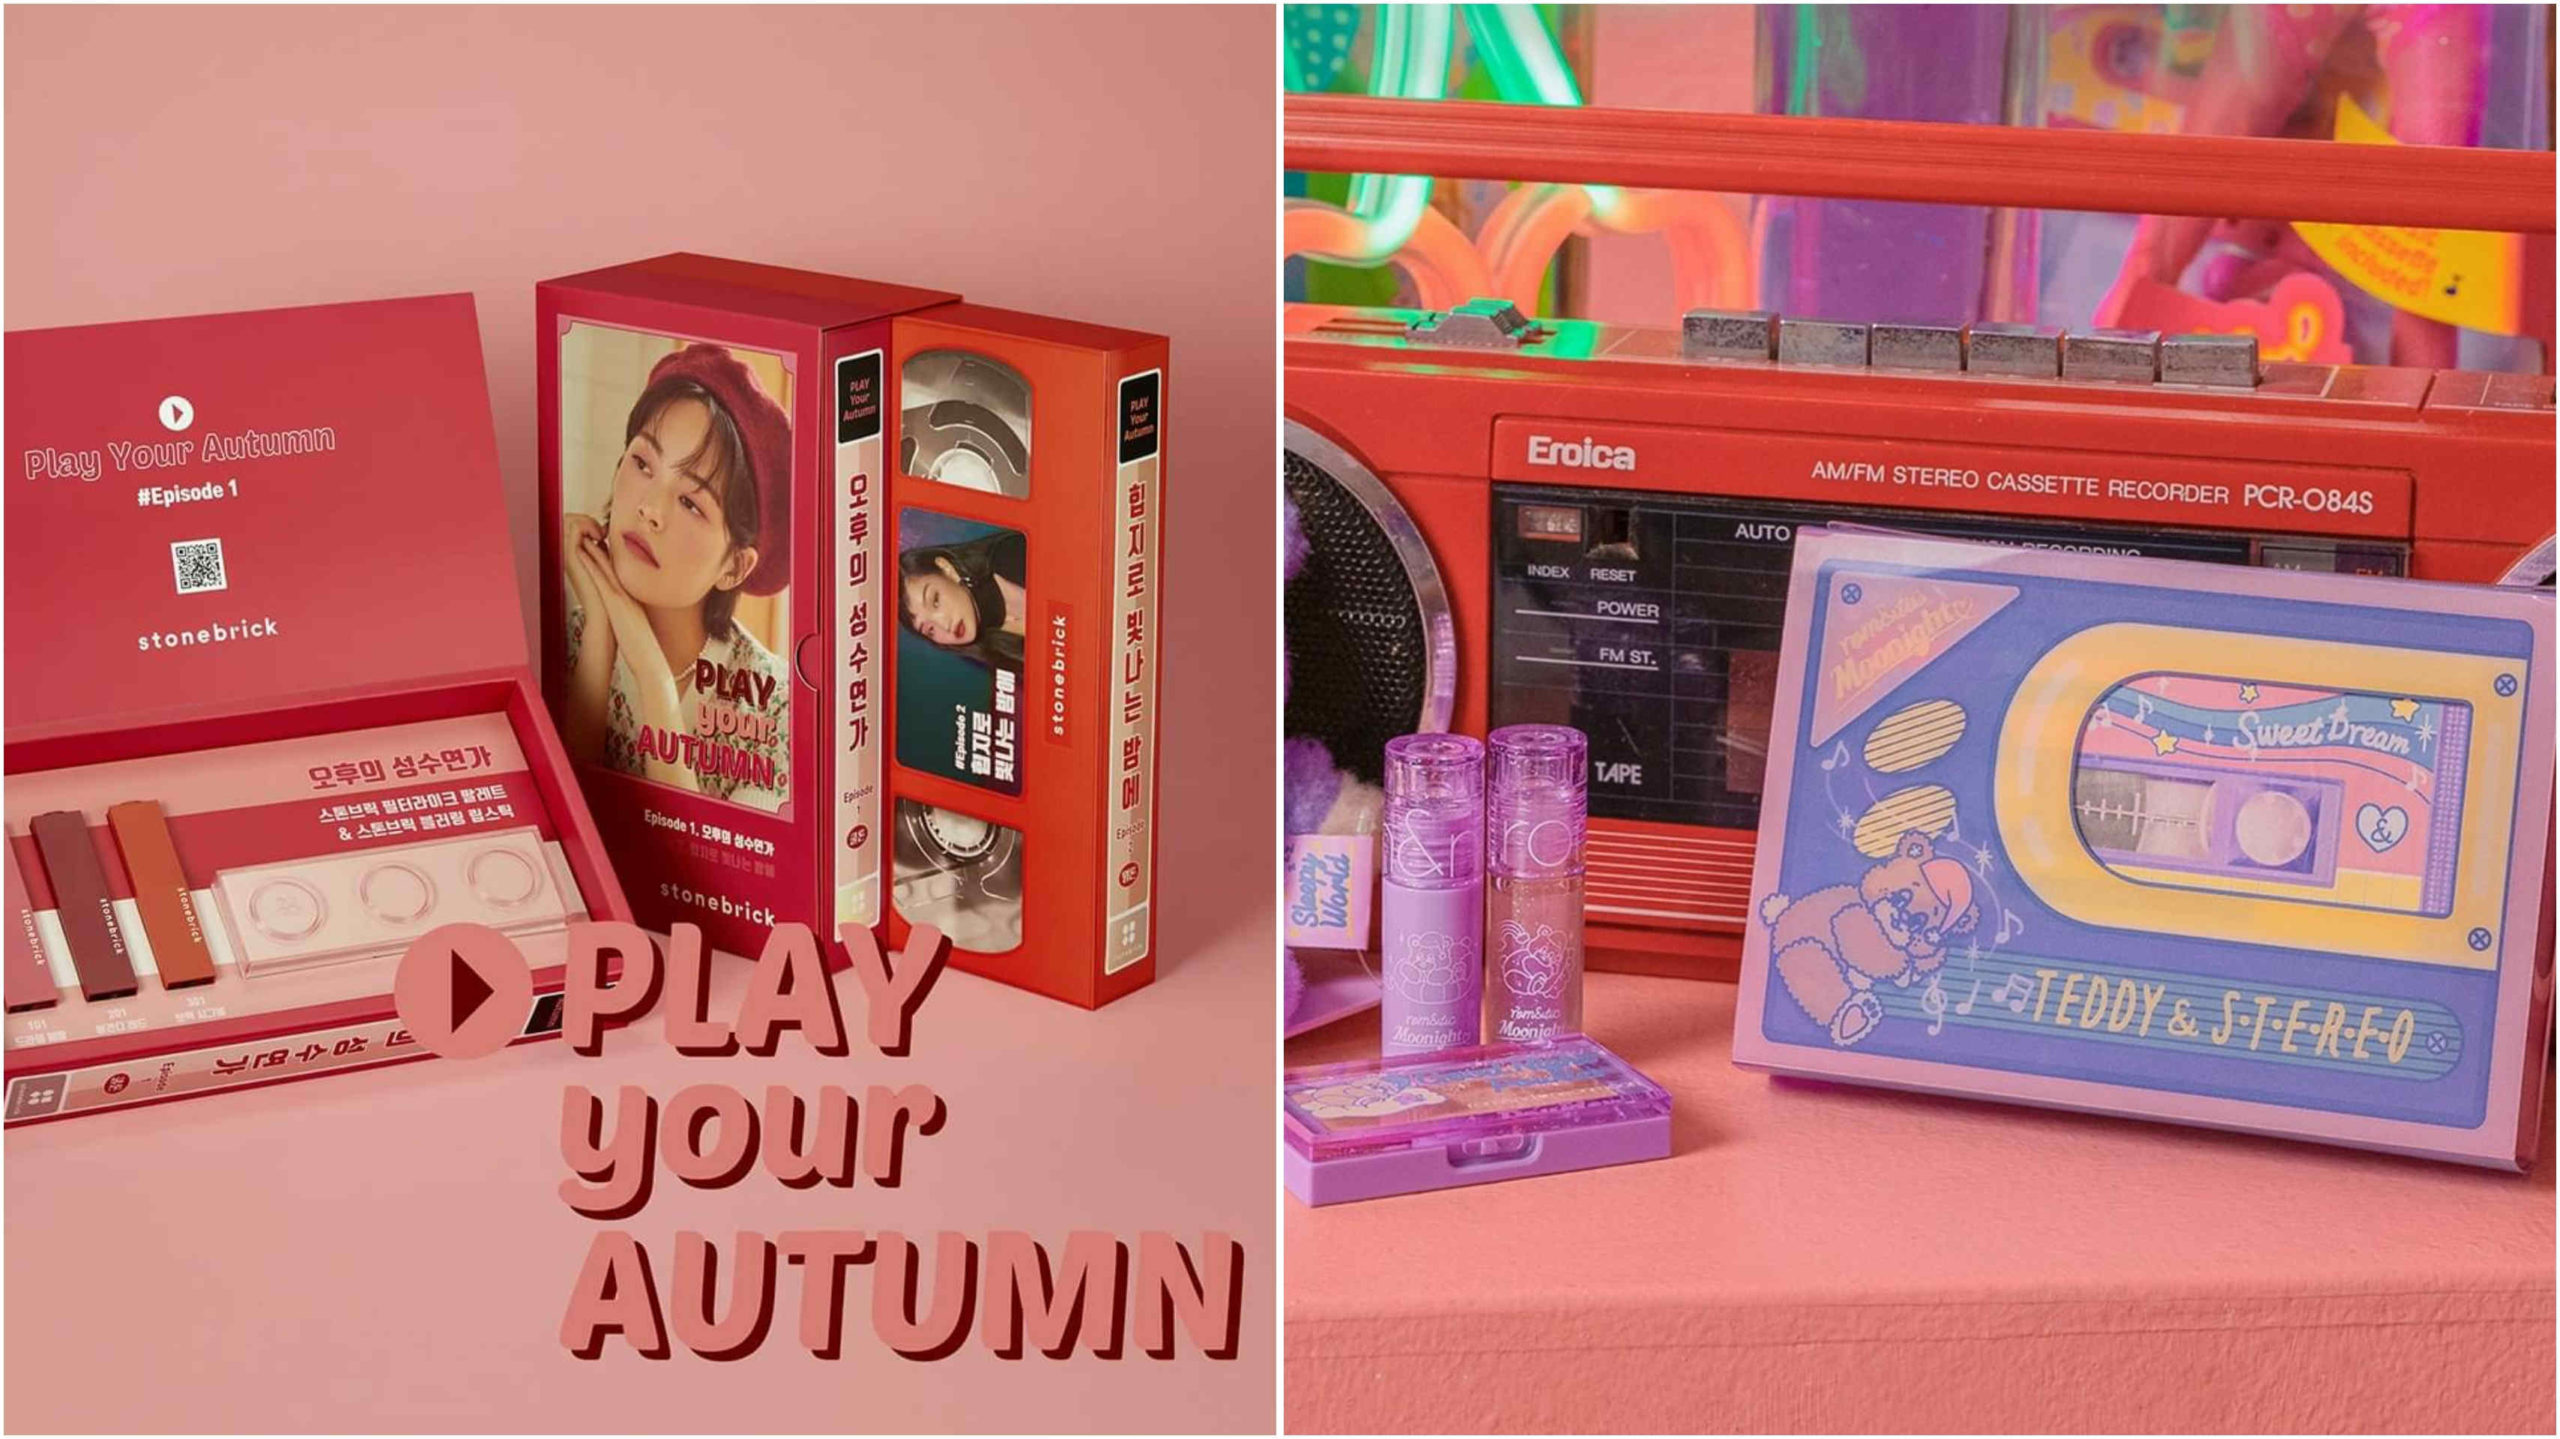 Newtro - Stonebrick's Play Your Autumn collection and Romand's Good Night collection